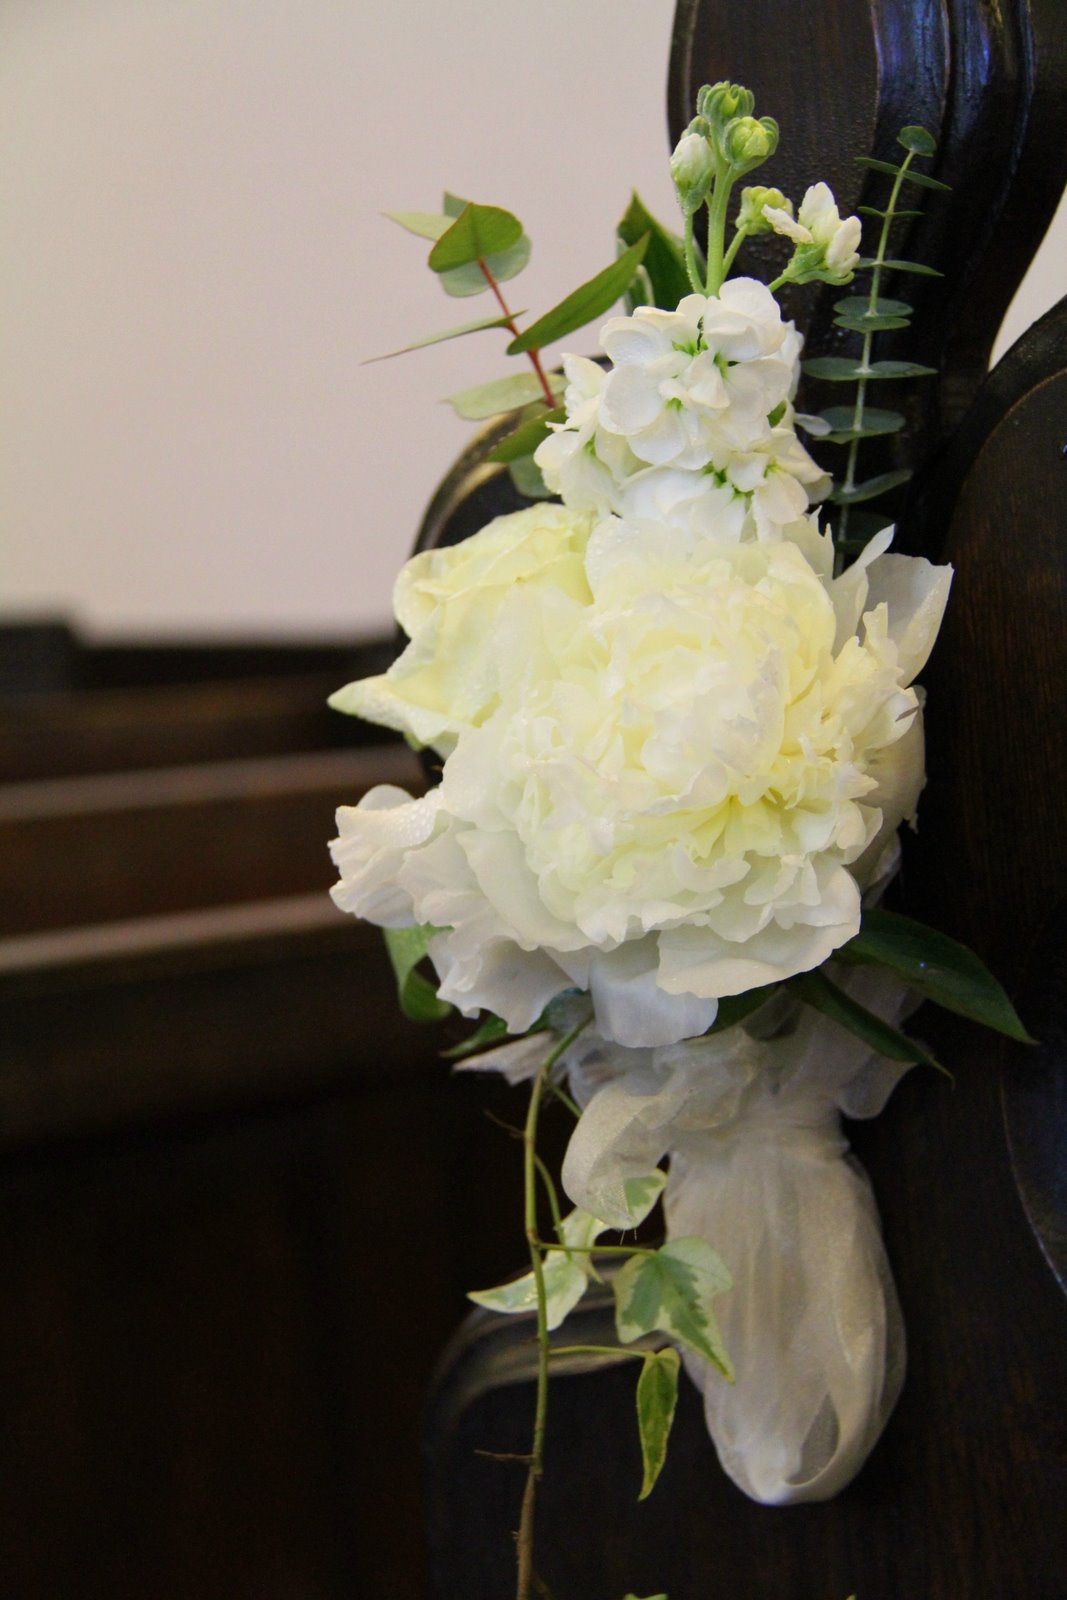 flower design wedding ceremony styling pew end decorations at all hallows church great mitton. Black Bedroom Furniture Sets. Home Design Ideas